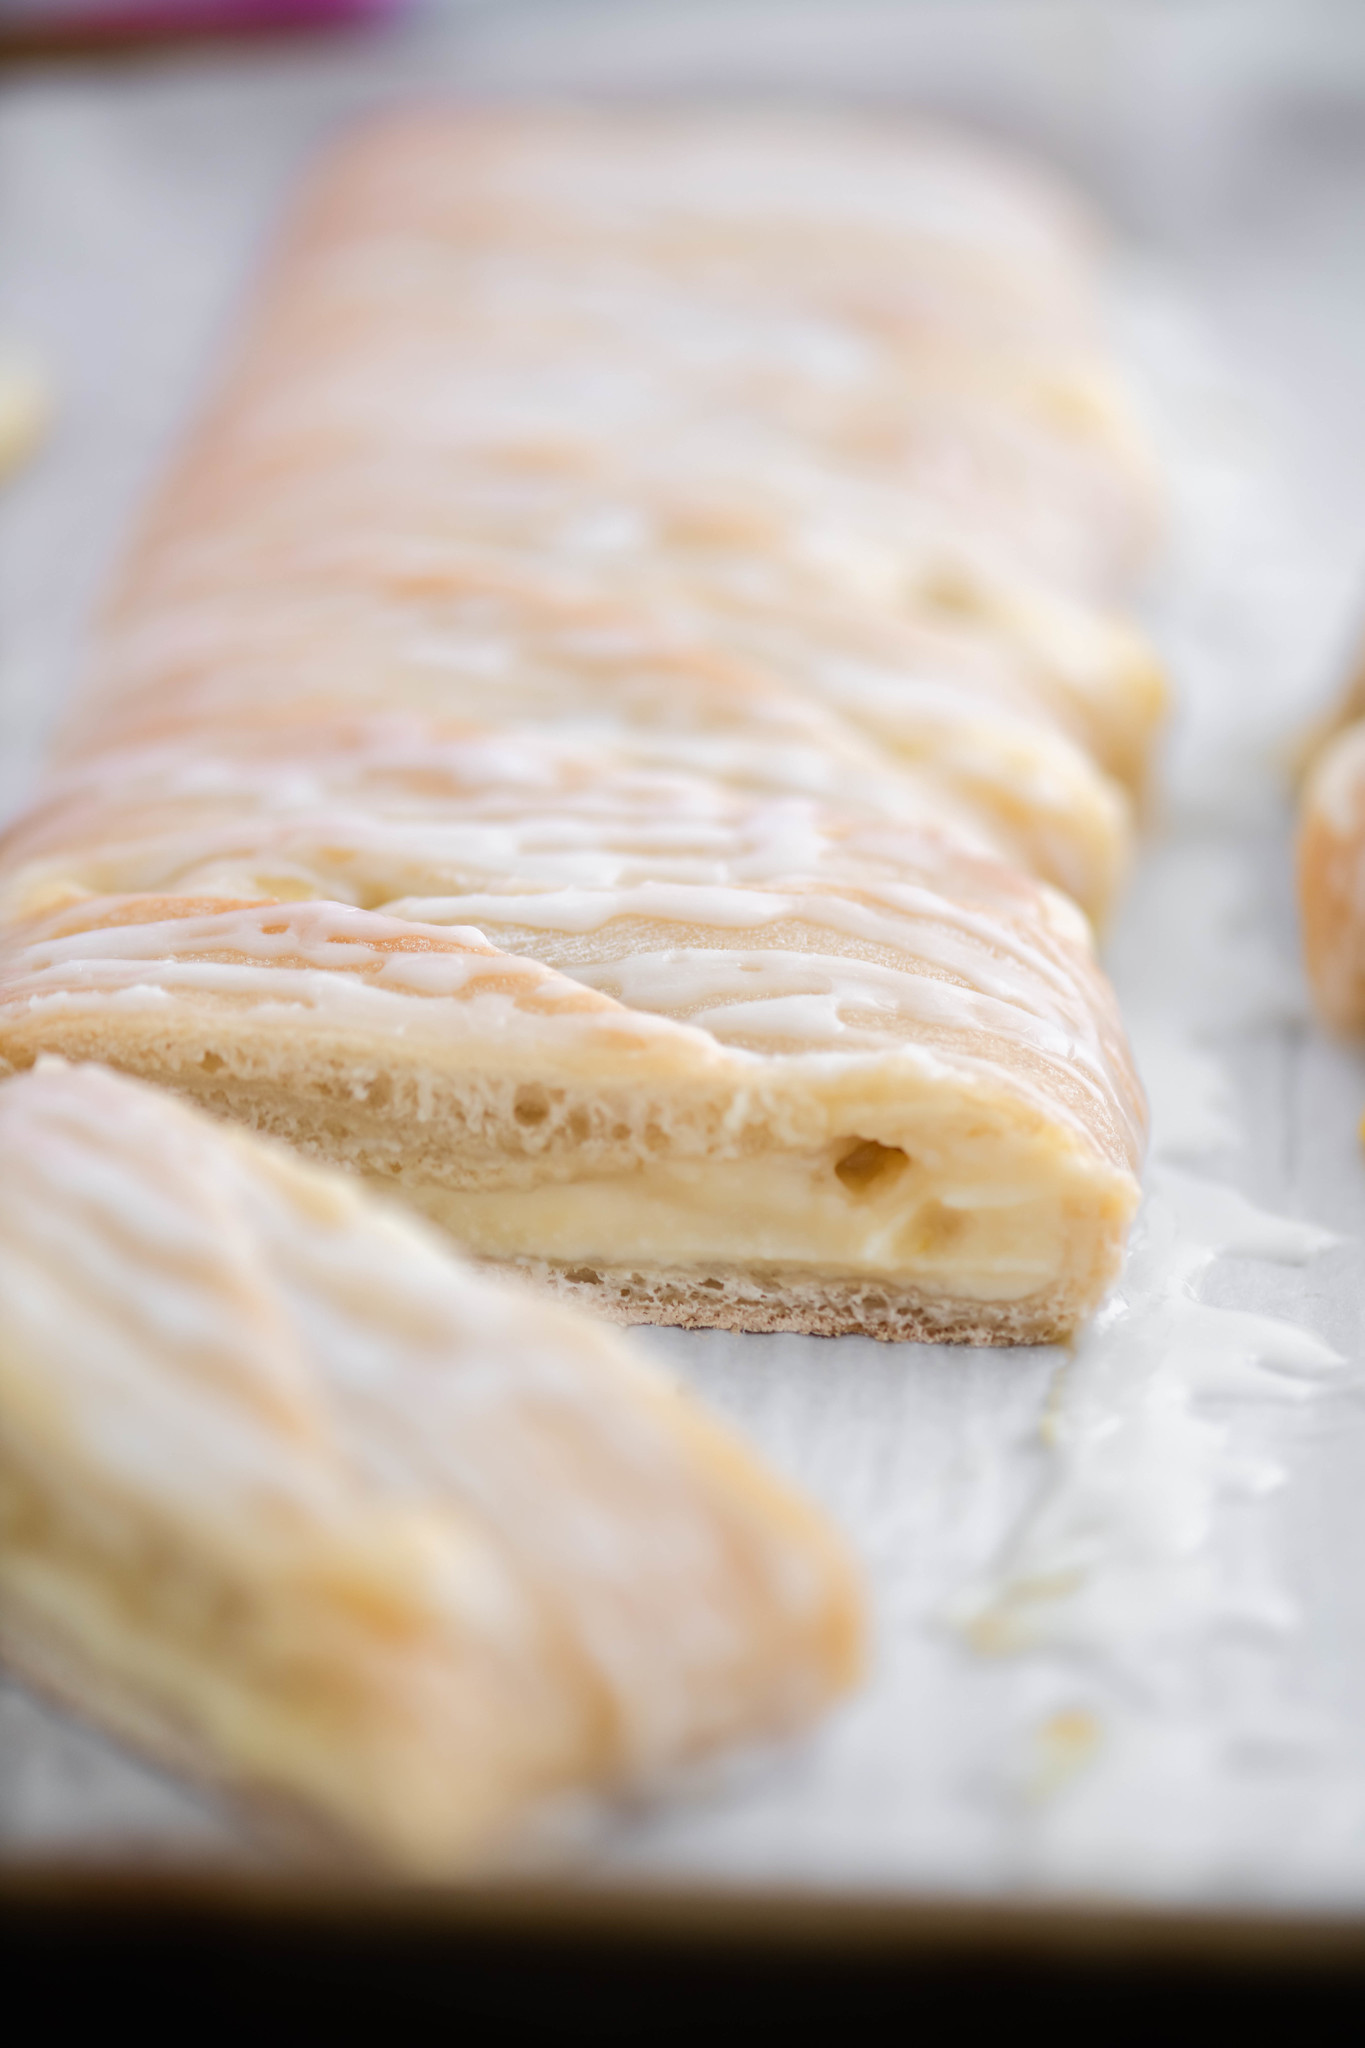 This Lemon Cream Cheese Braid is Easter brunch perfection. Start with Rhodes sweet dough and a few simple ingredients to make this holiday stunner.